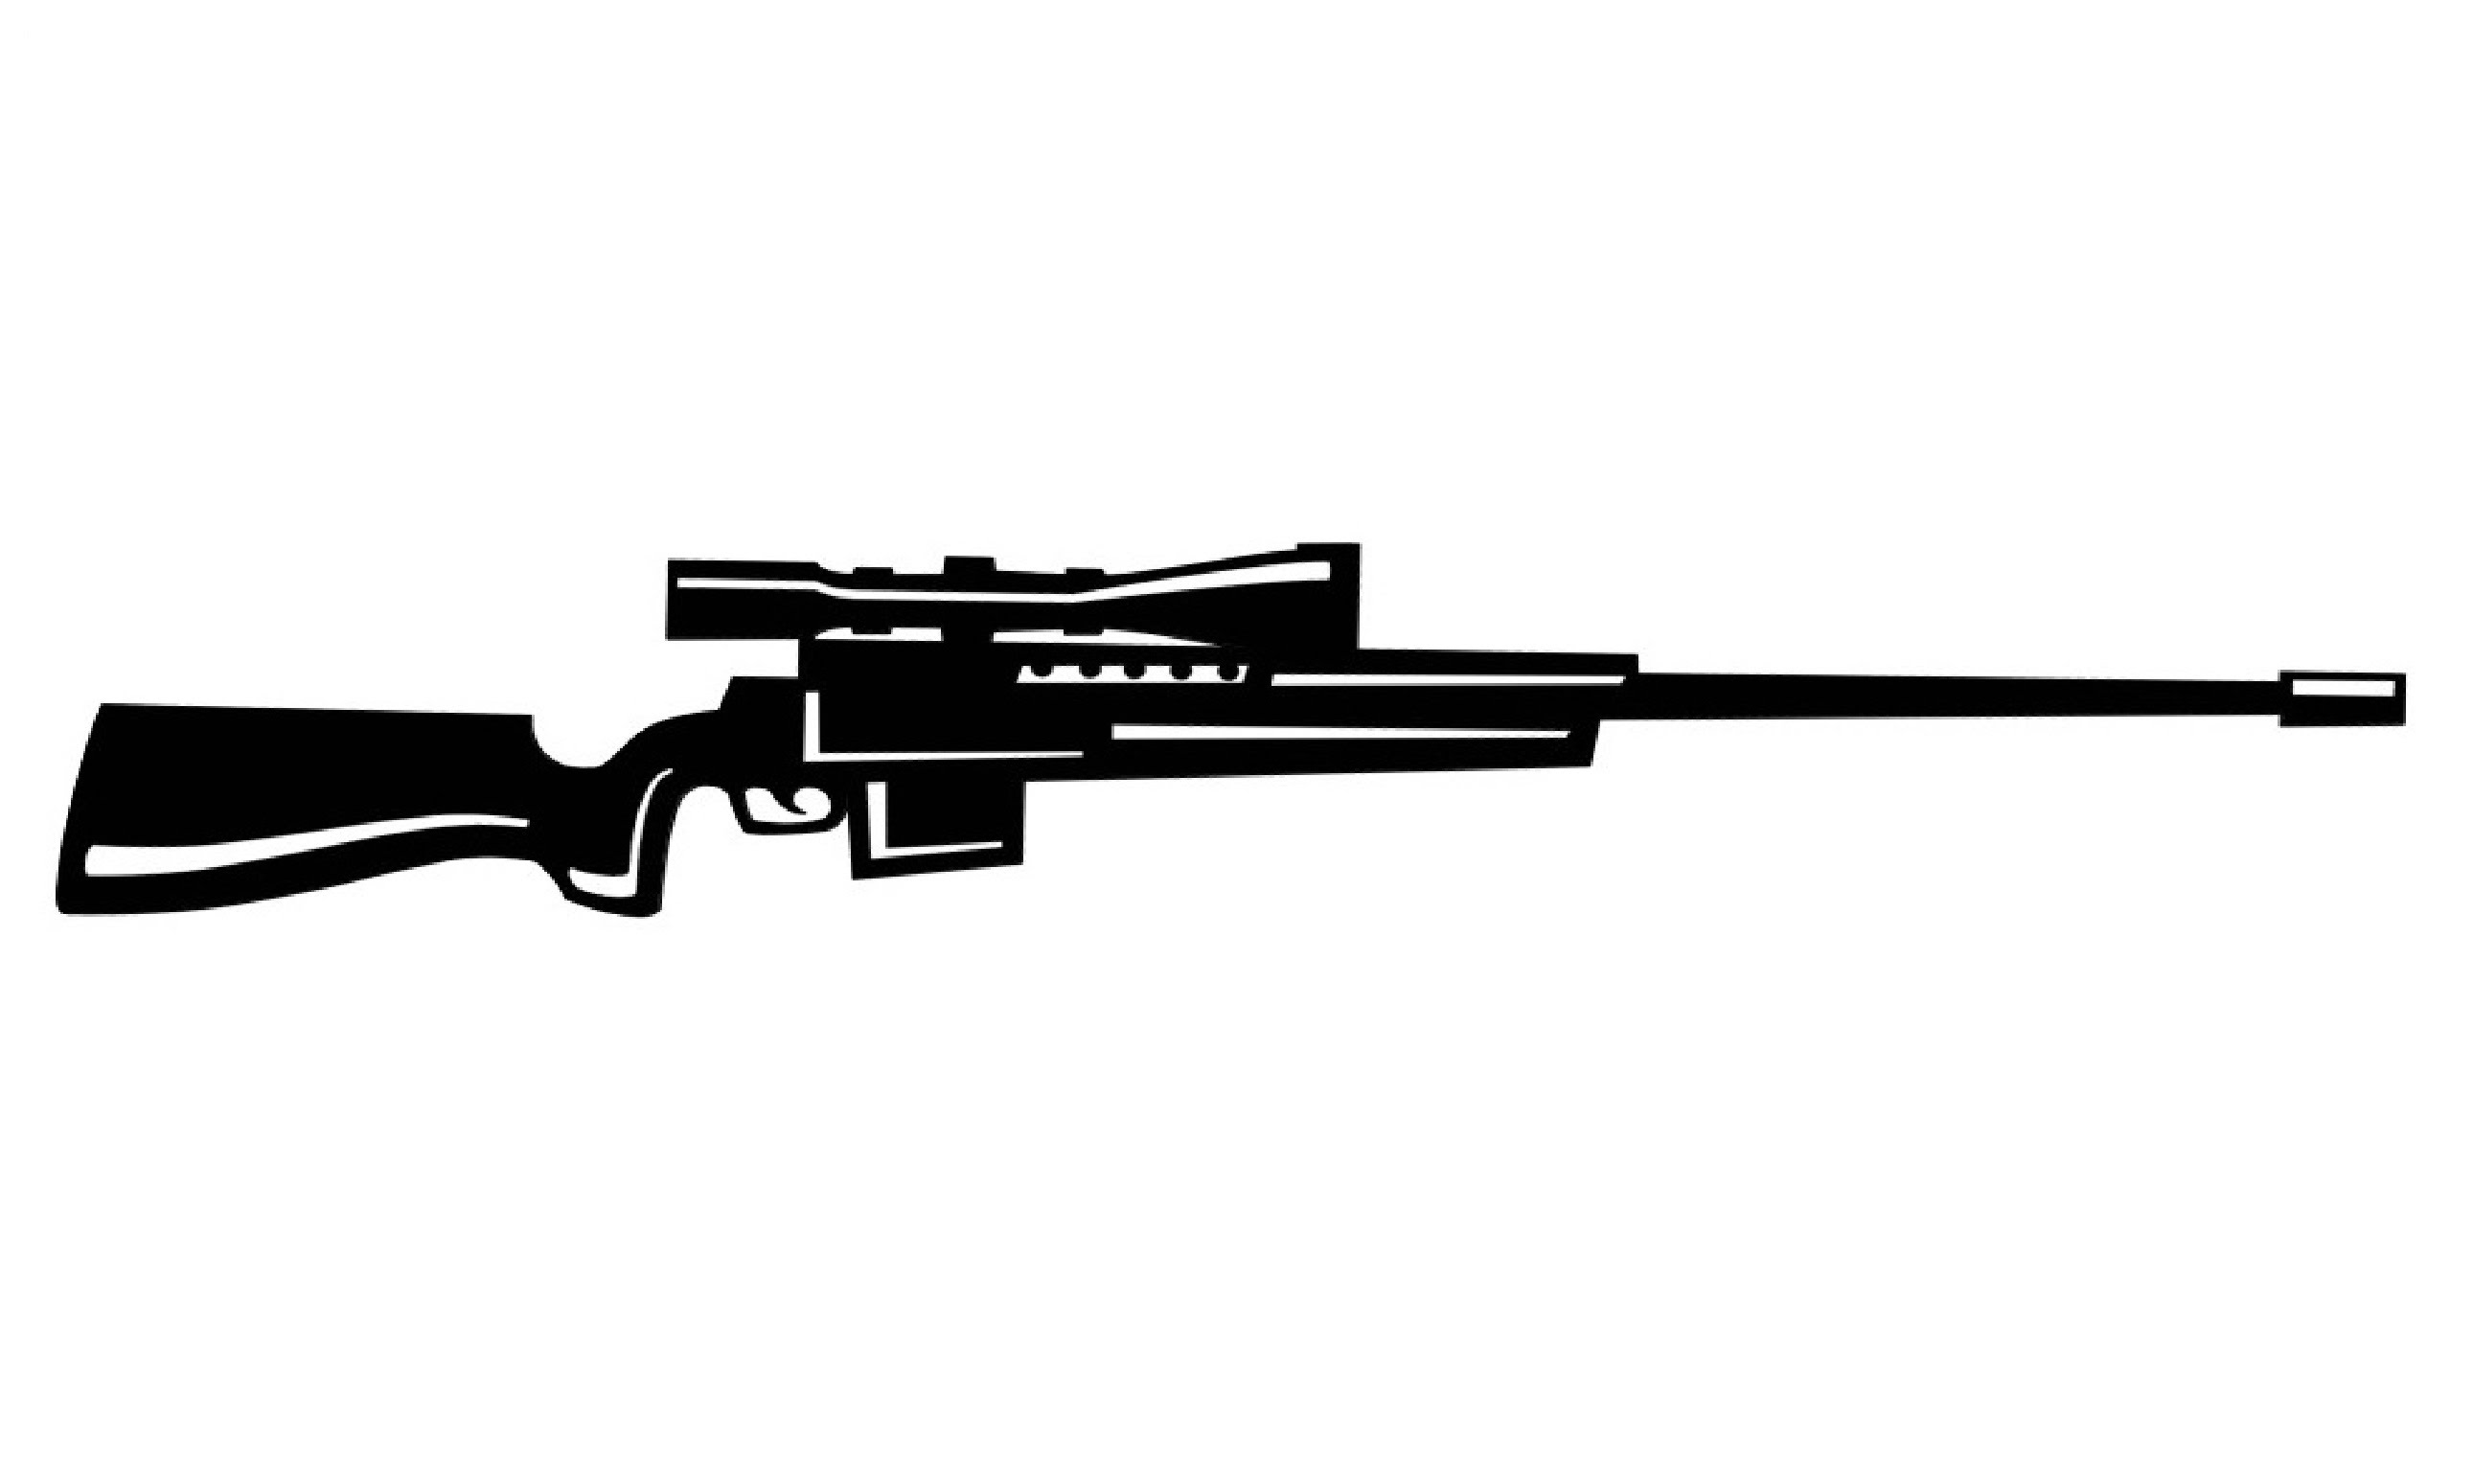 Drawn weapon sniper rifle Rifle / Rifle  to